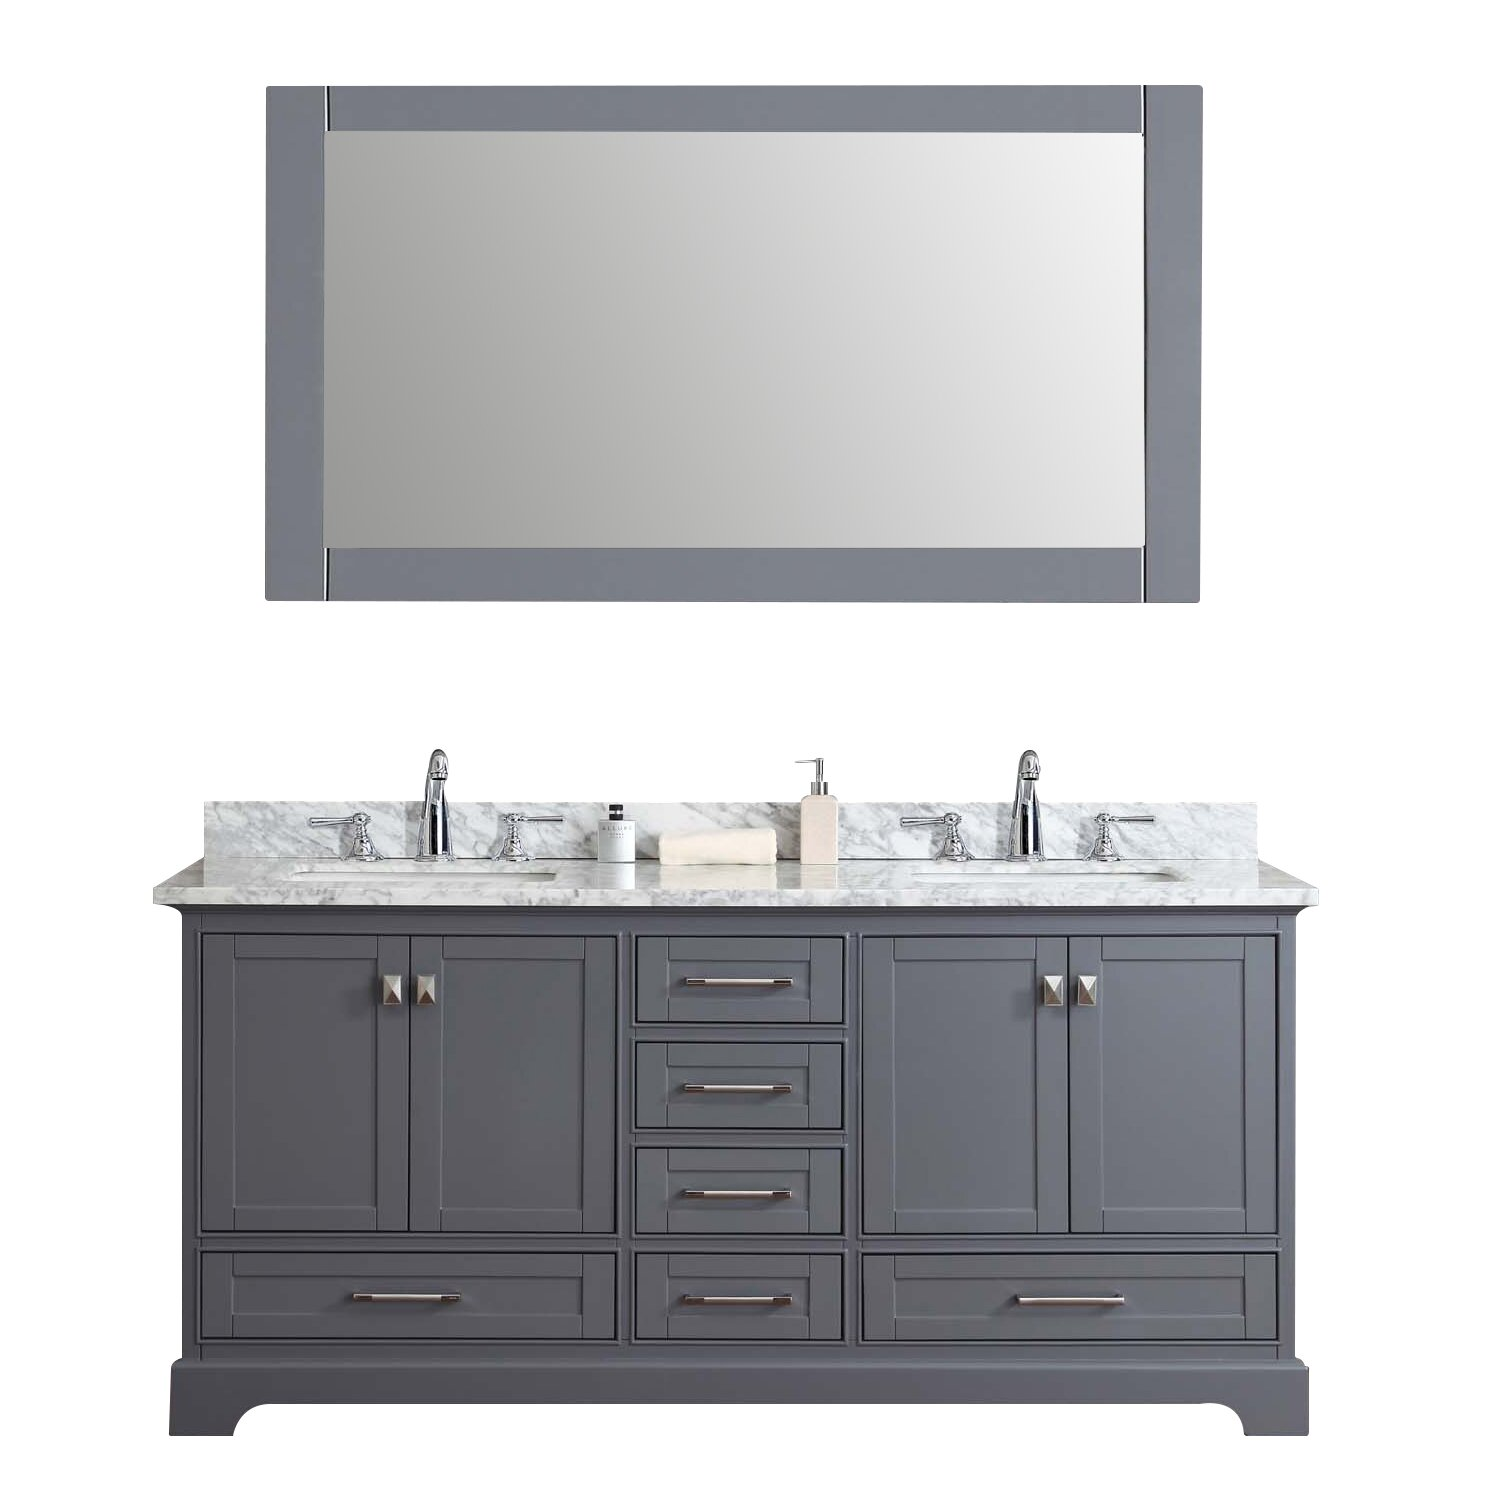 Dcor Design Barrington 72 Double Sink Bathroom Vanity Set